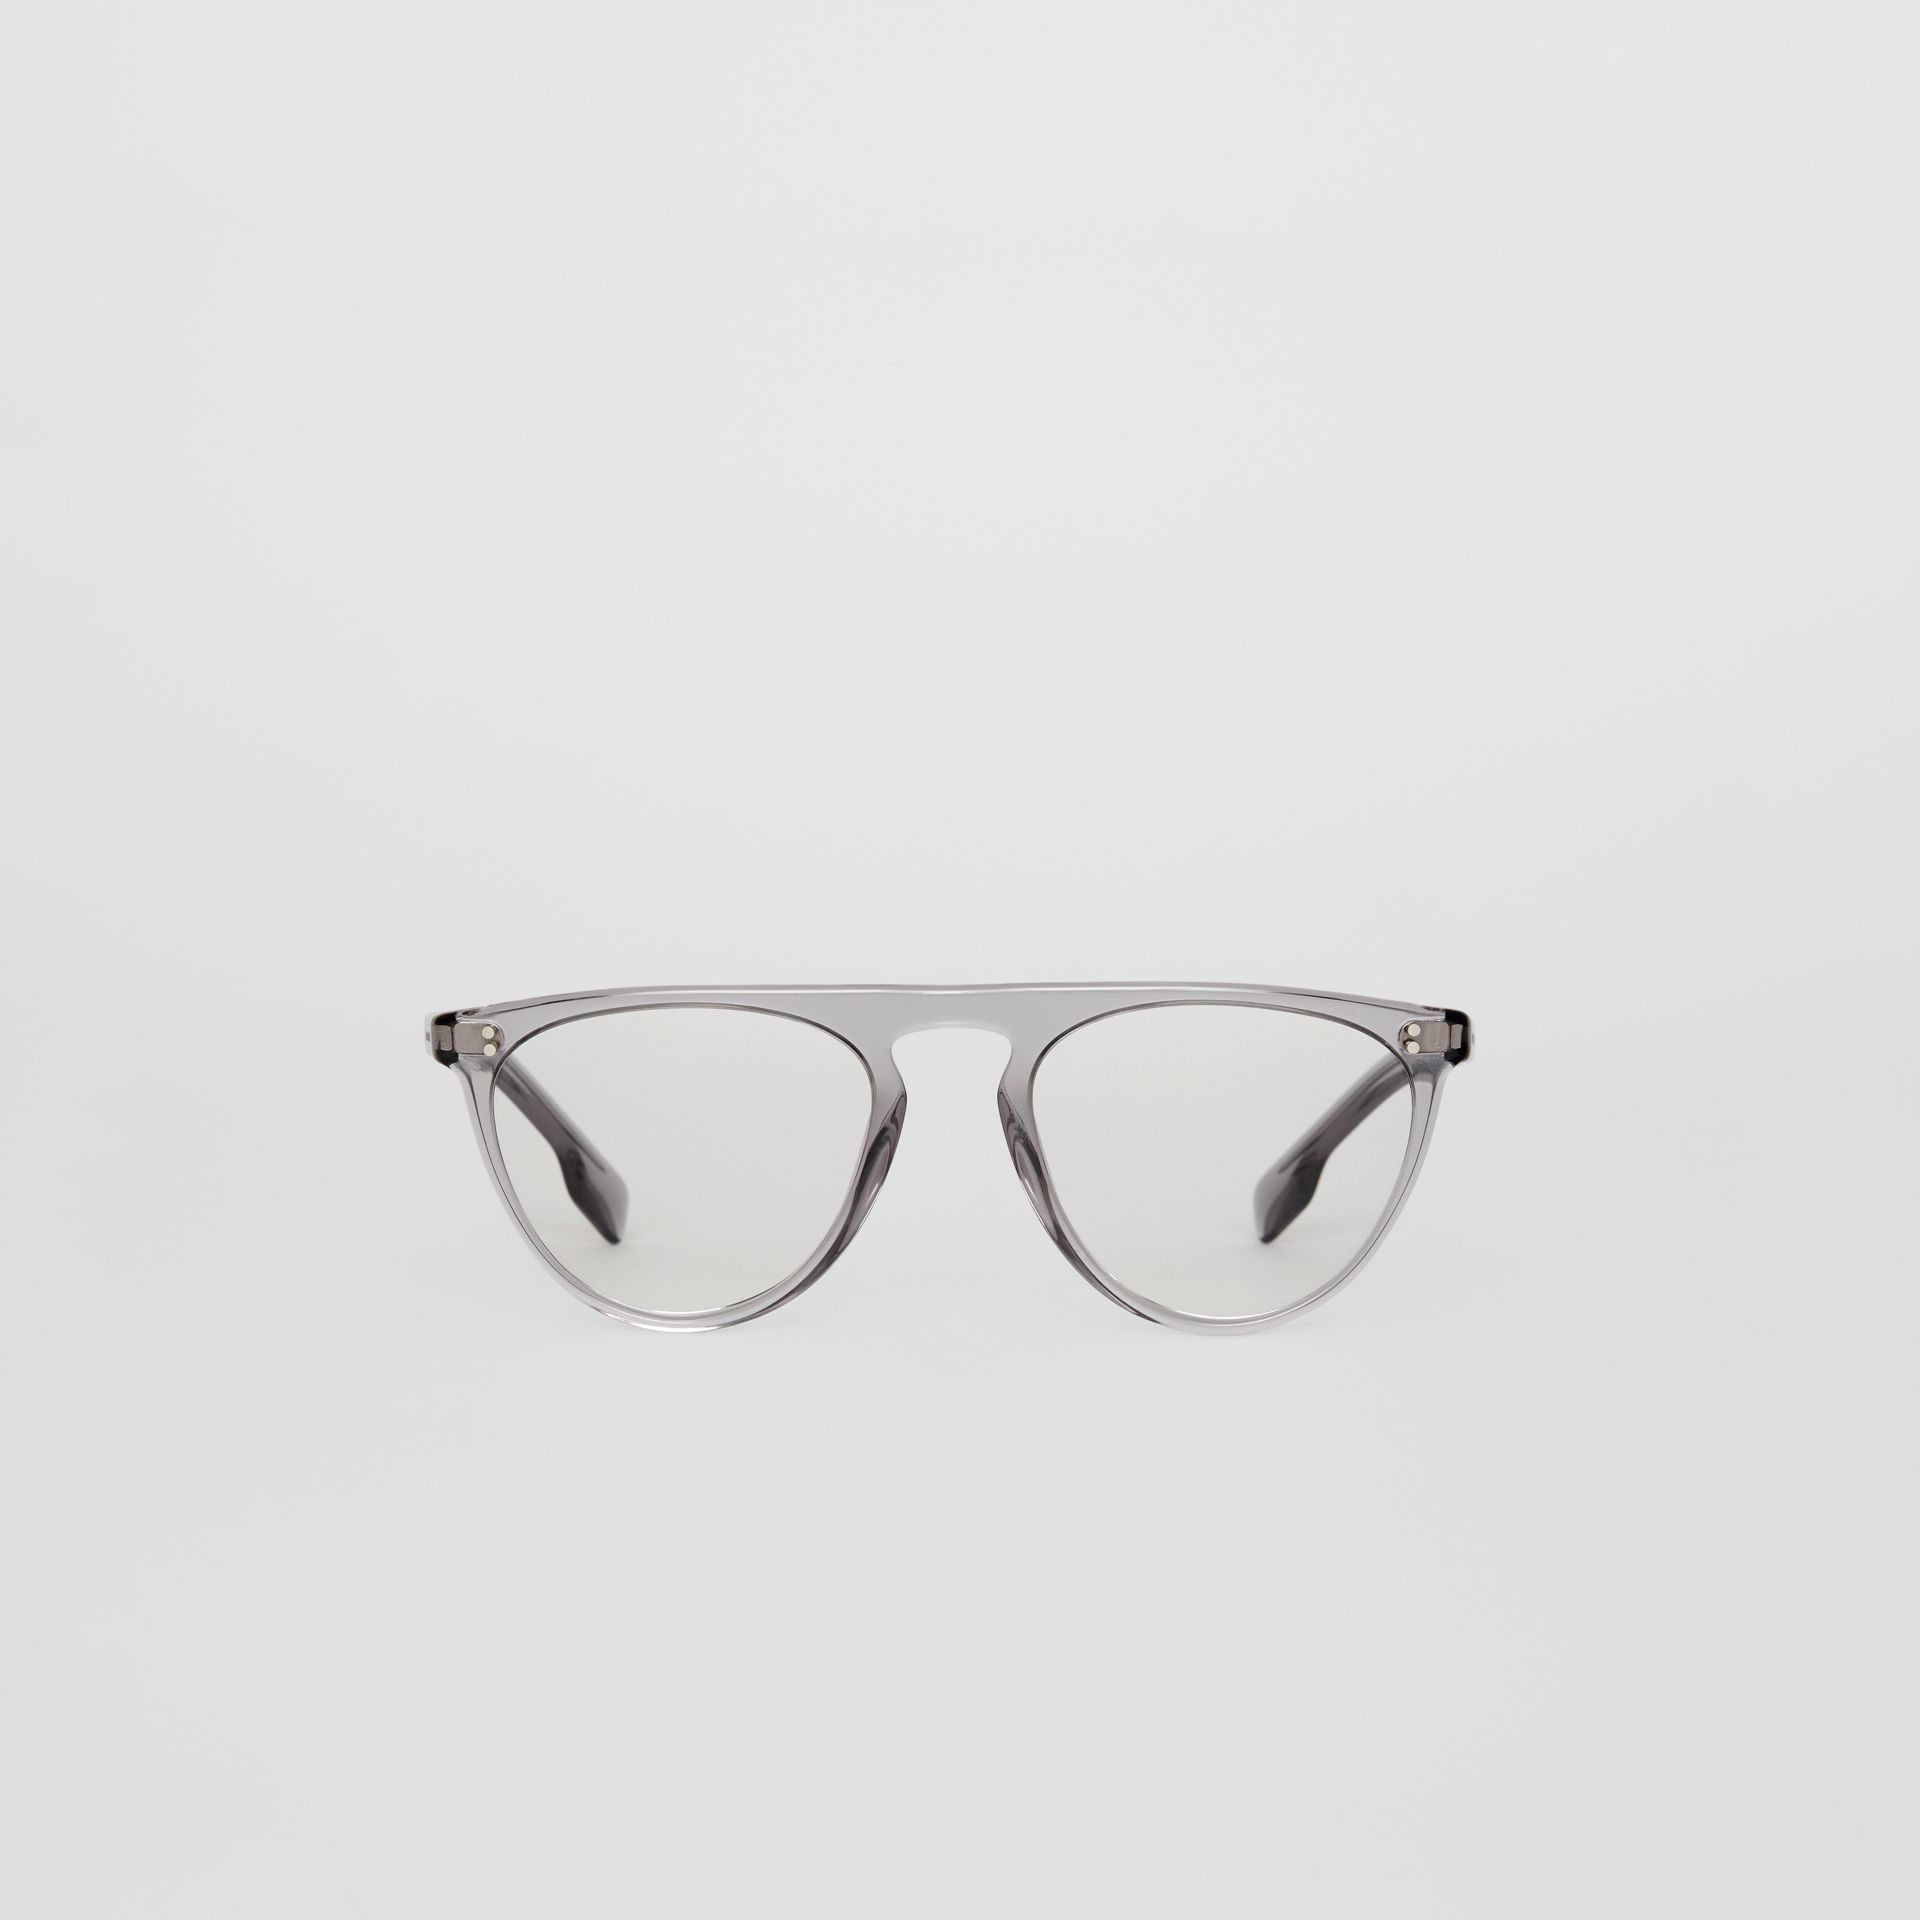 Keyhole D-shaped Optical Frames in Grey - Men | Burberry - gallery image 0